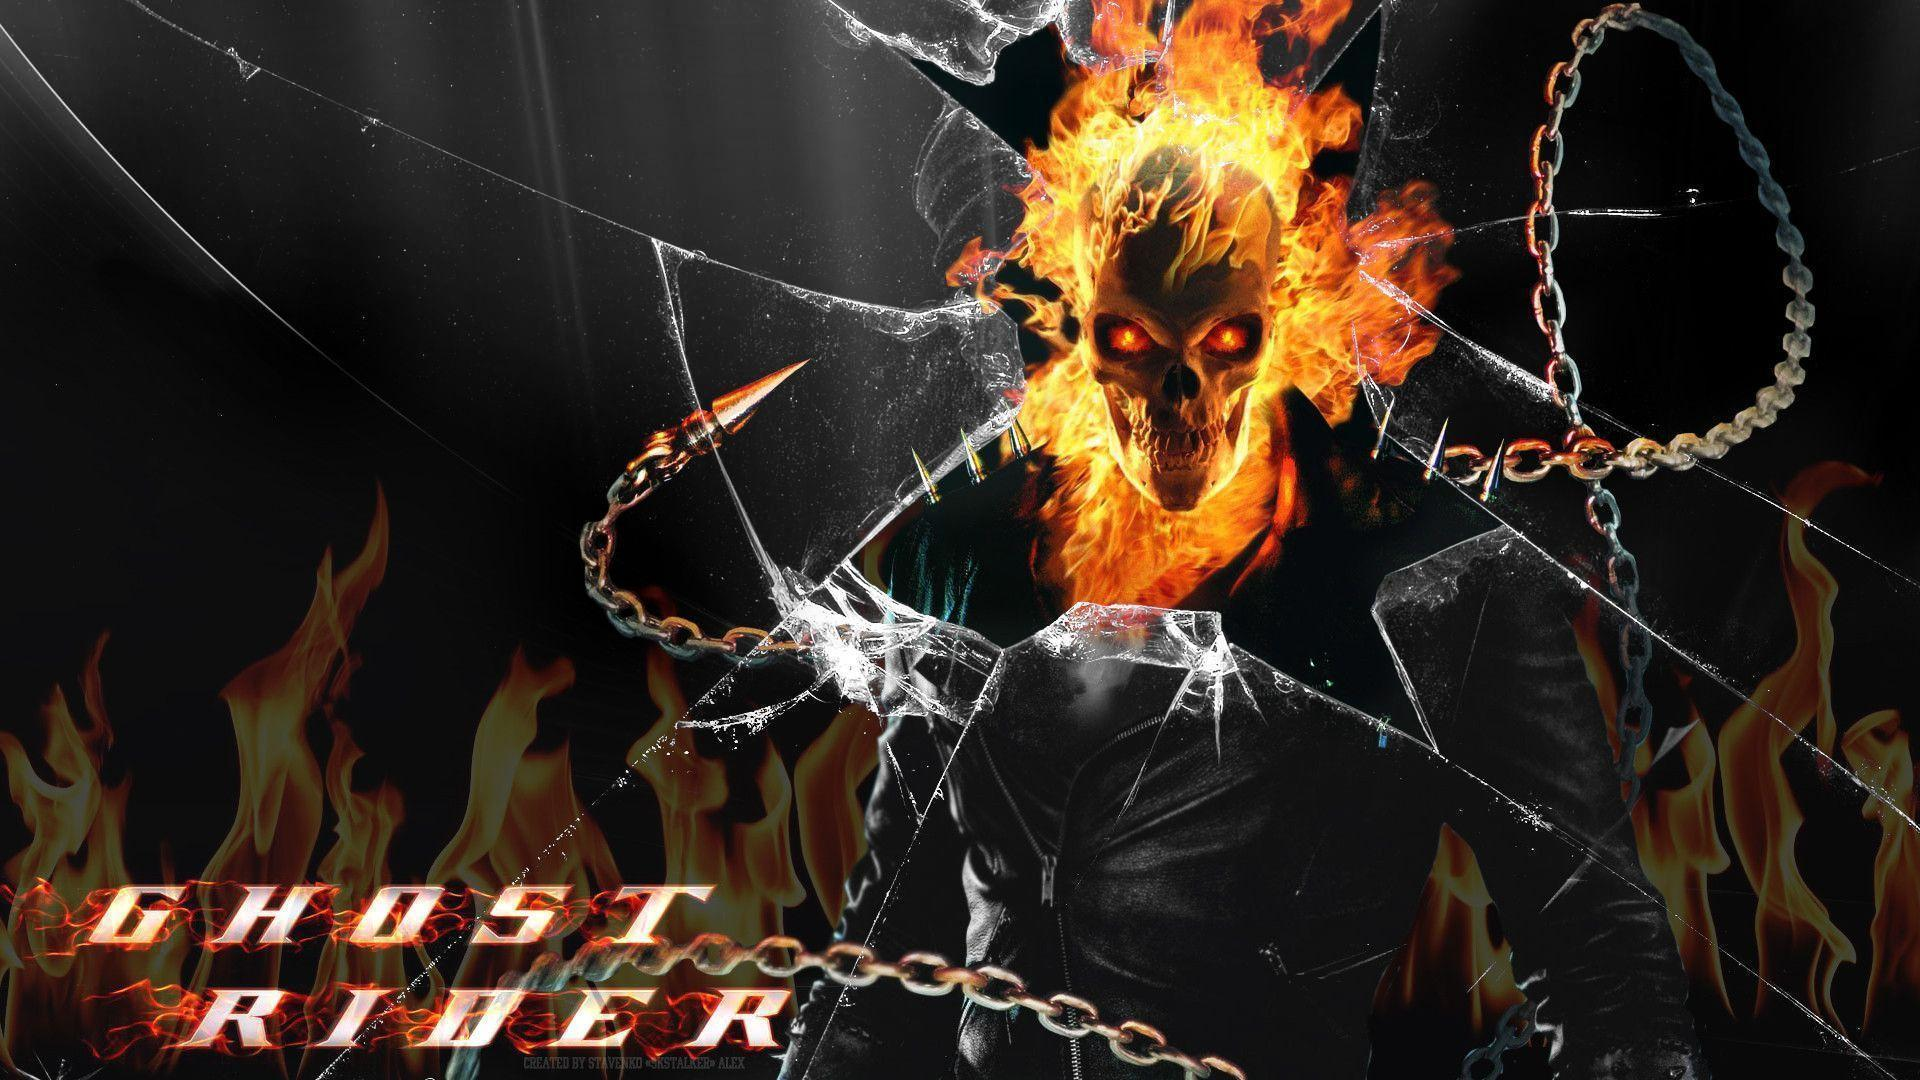 The Ghost Rider image Ghost rider HD wallpapers and backgrounds